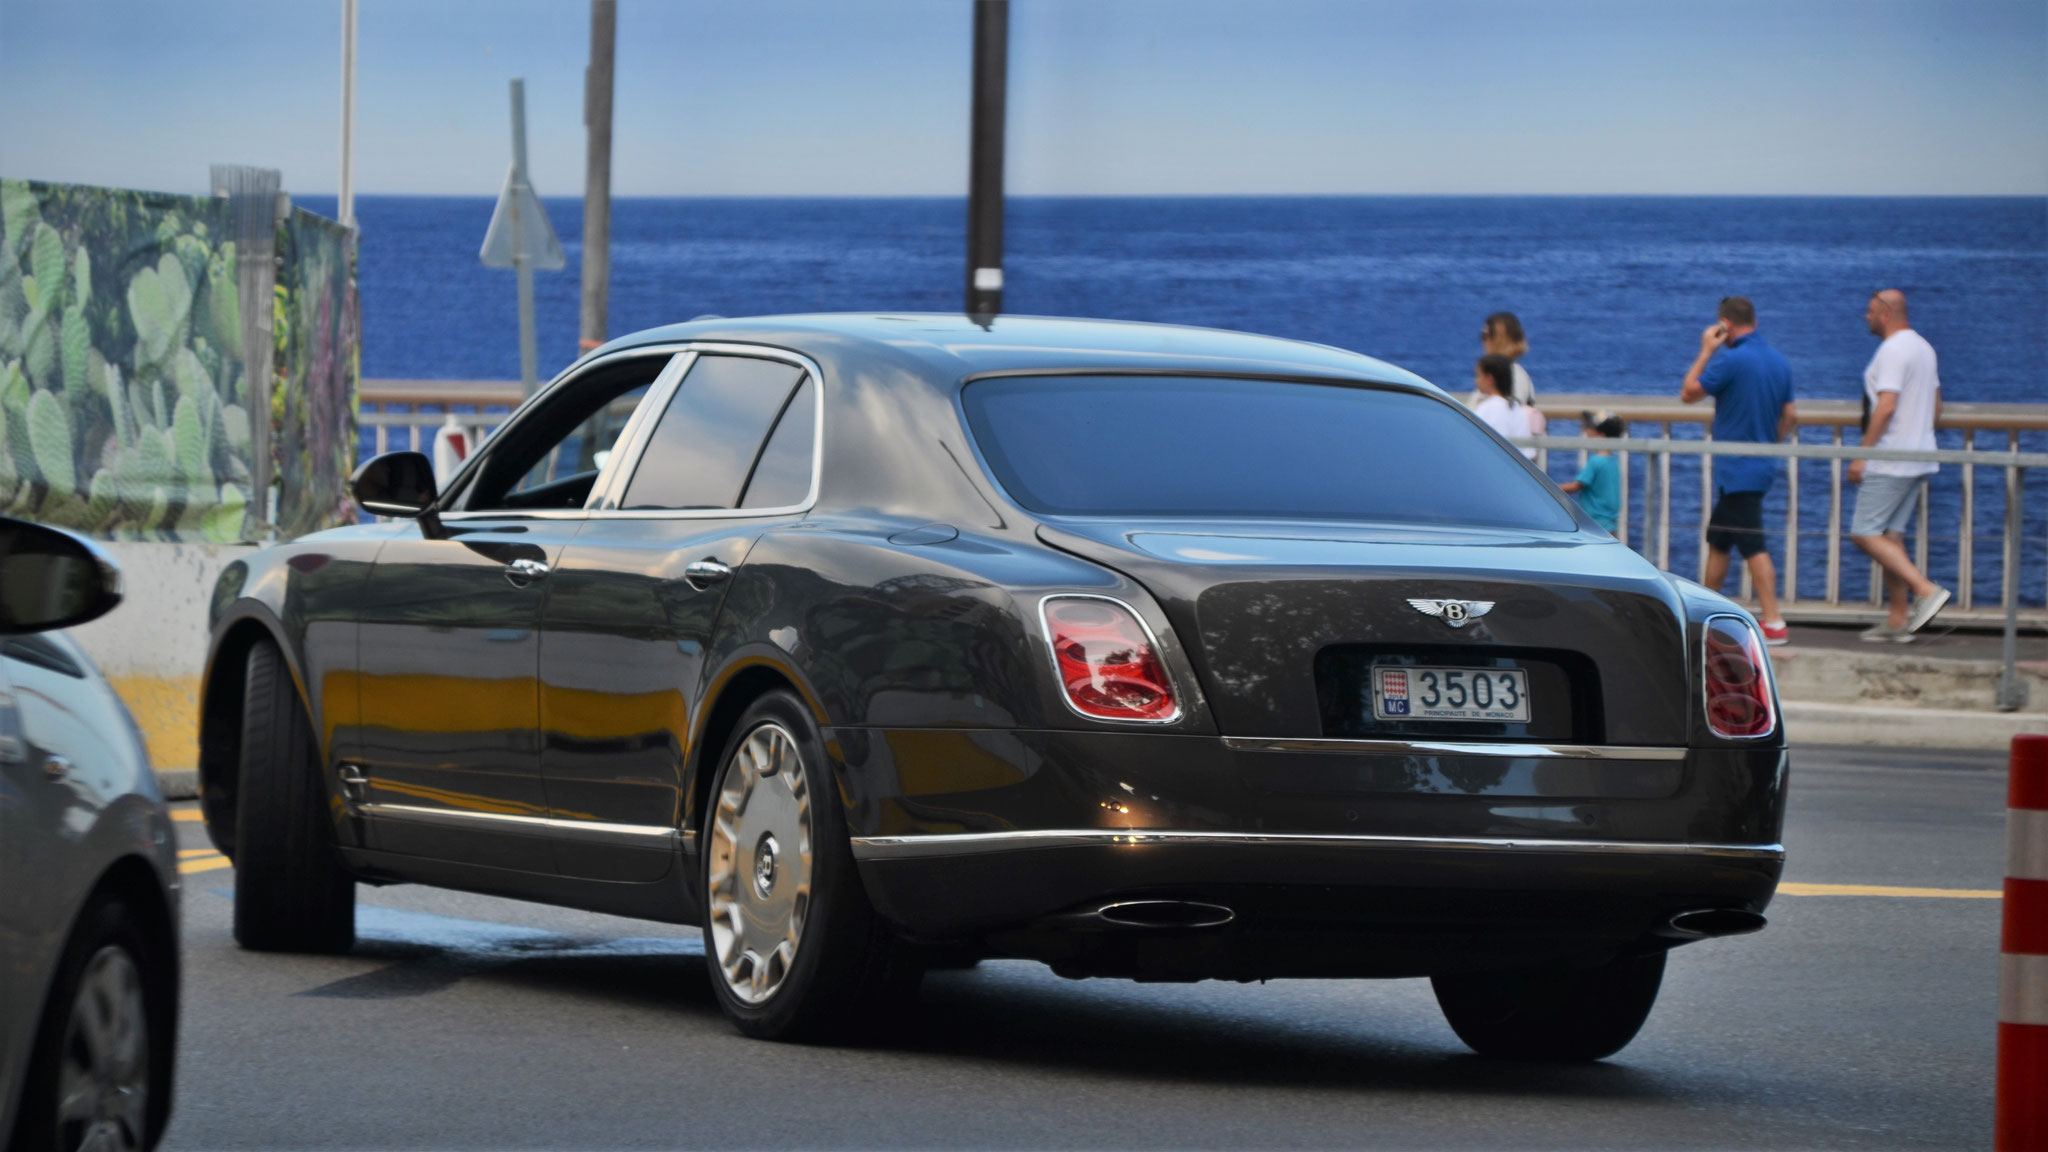 Bentley Mulsanne - 3503 (MC)